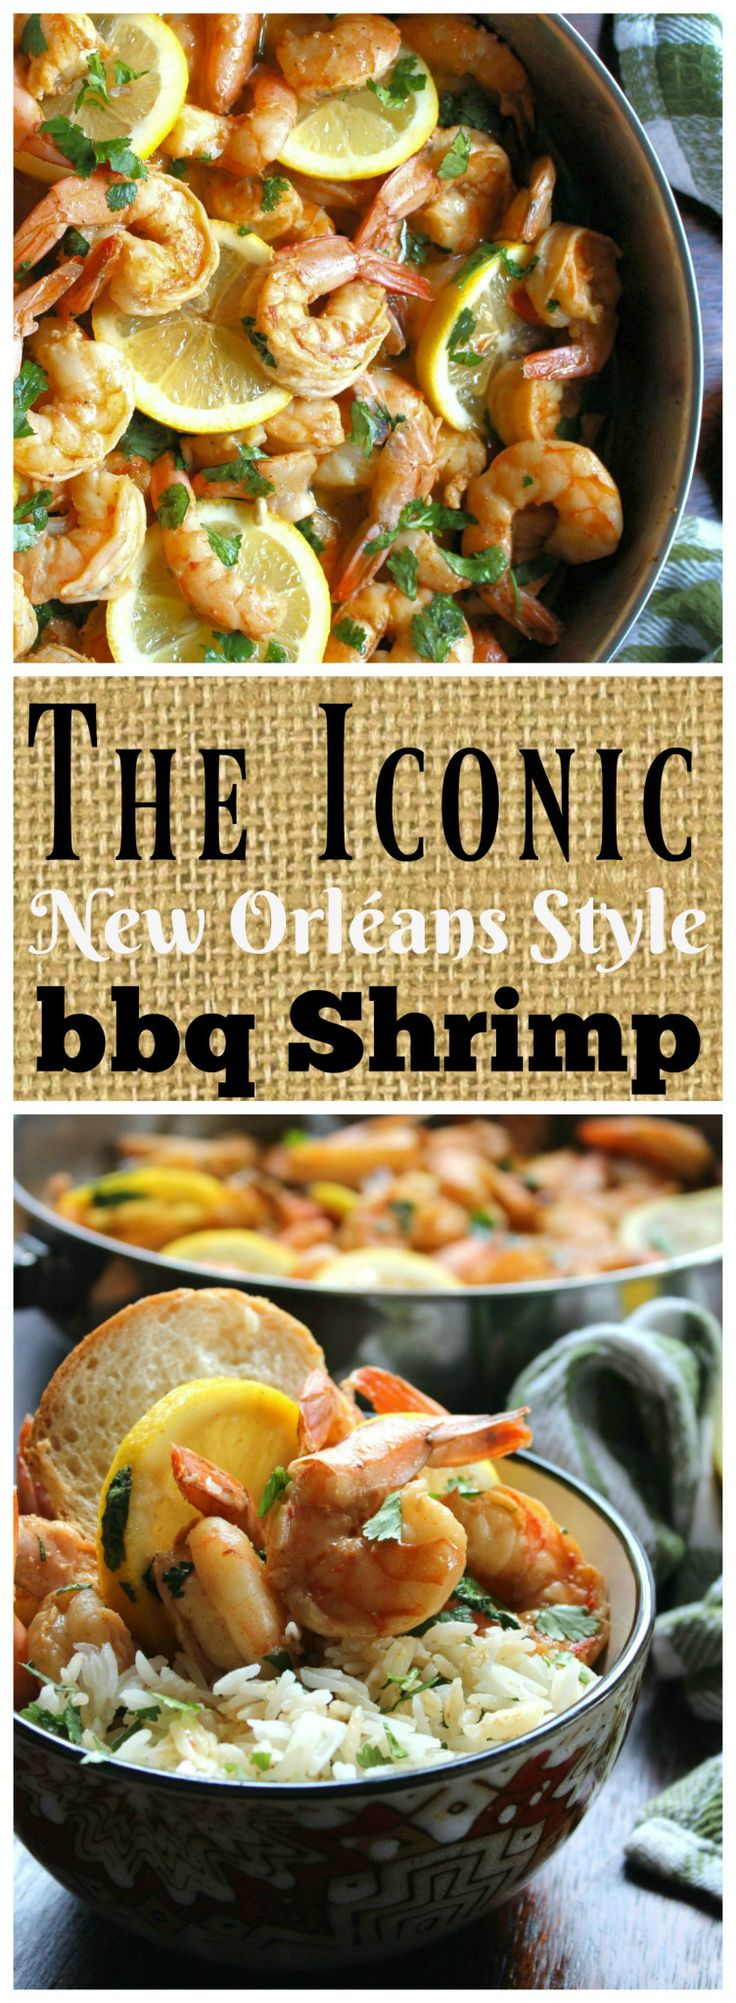 iconic-new-orleans-style-bbq-shrimp-pinterest-recipe